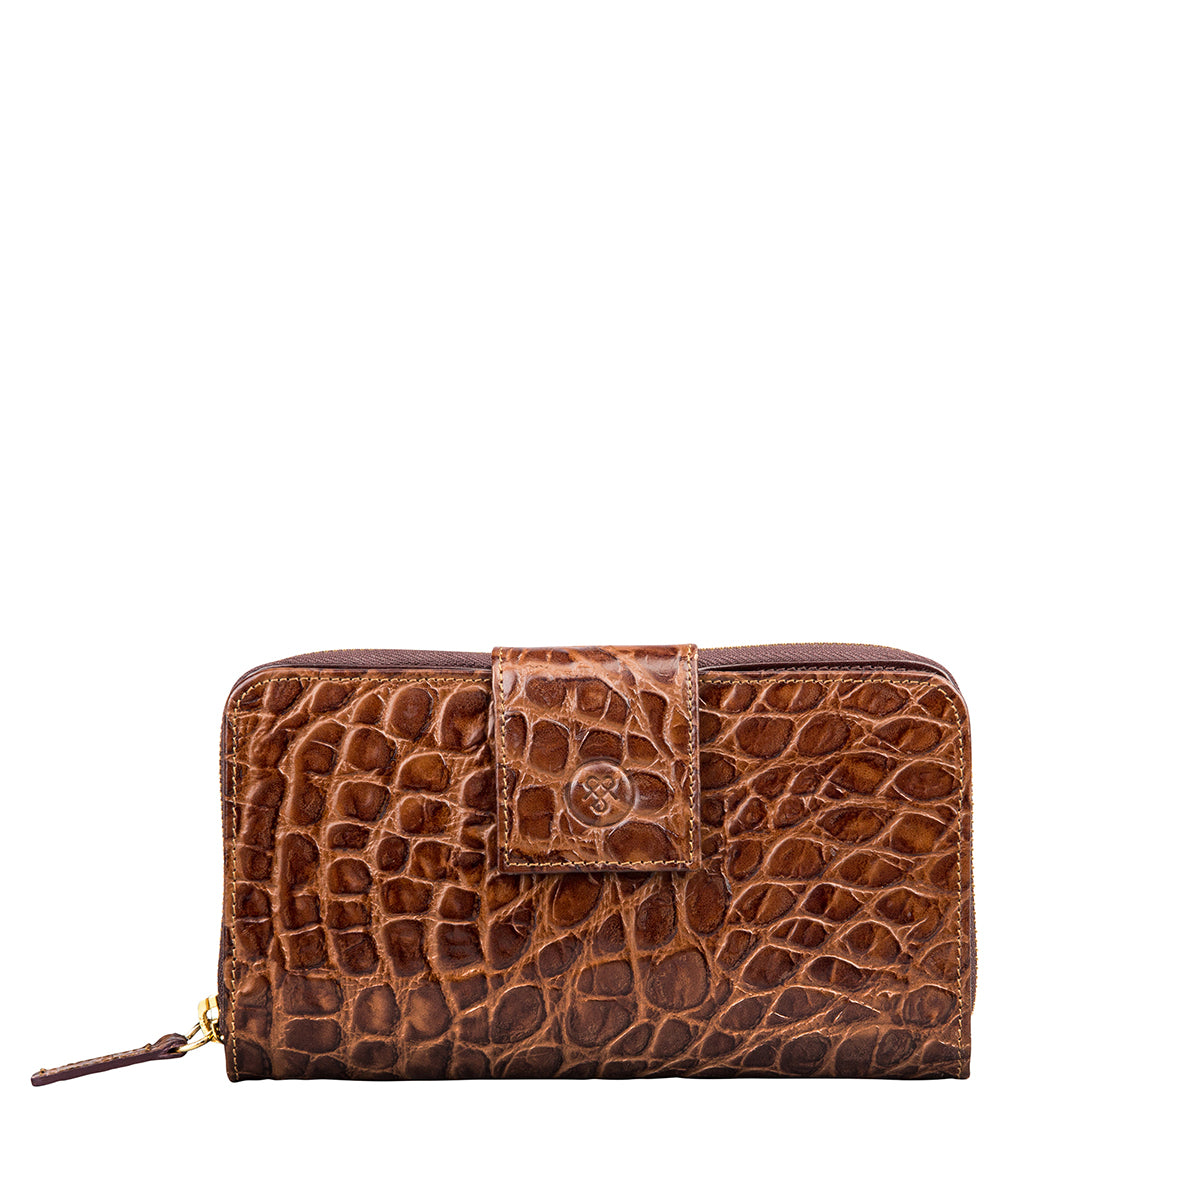 Image 1 of the 'Giorgia' Chocolate Mock Croc Veg-Tanned Leather Zip Purse